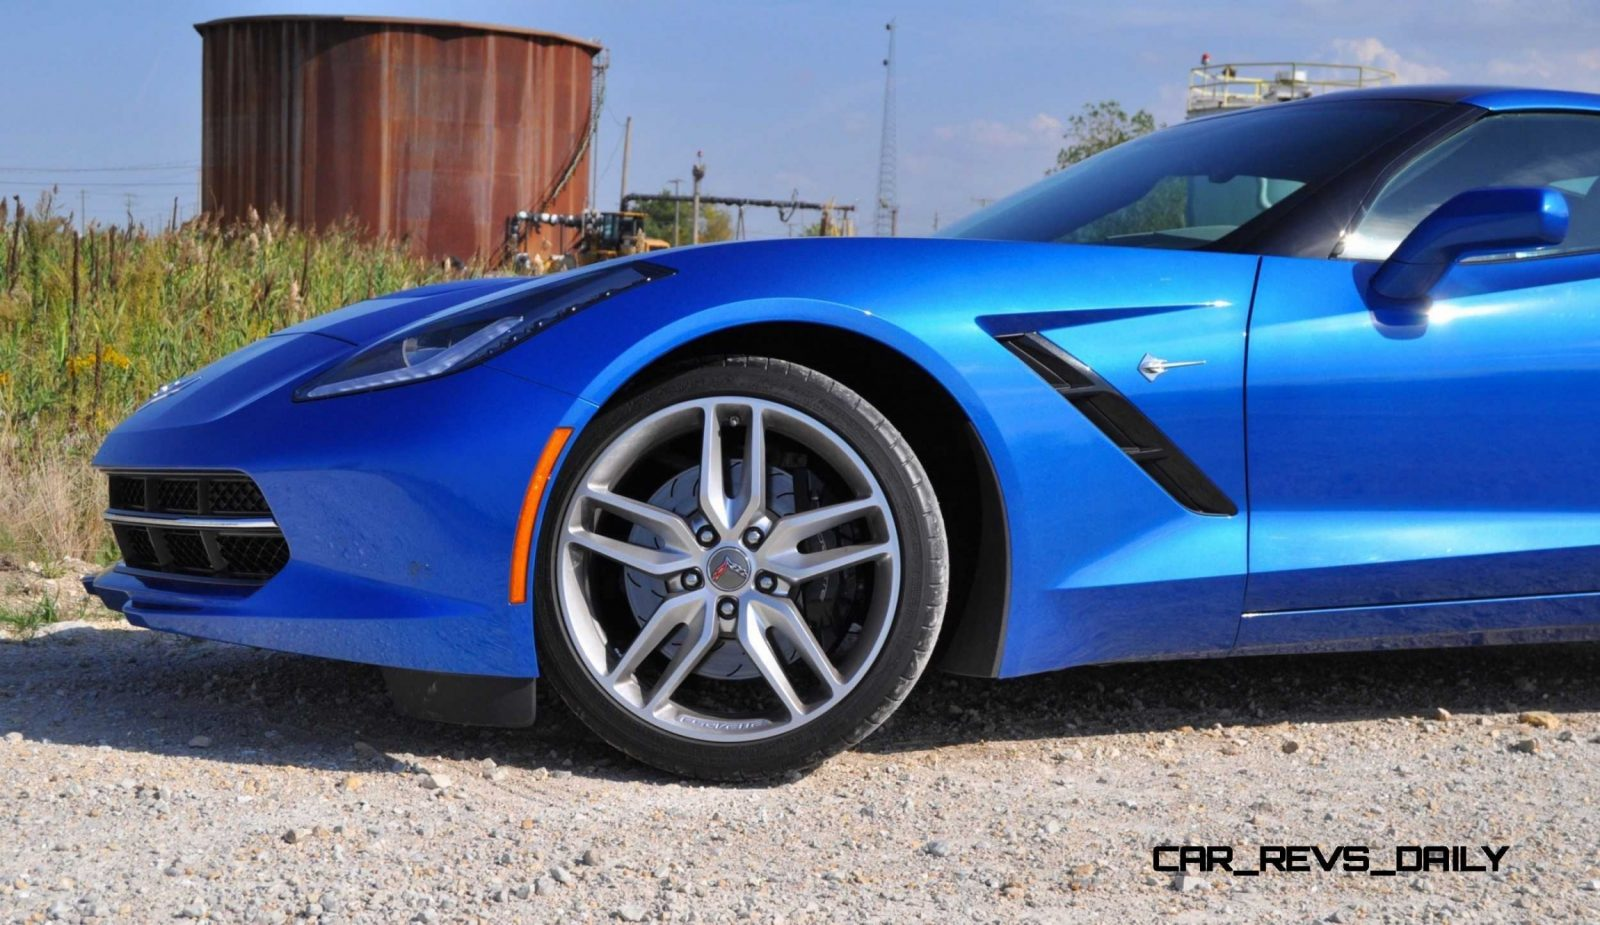 2014 Chevrolet Corvette Stingray Z51 in 102 Photos28